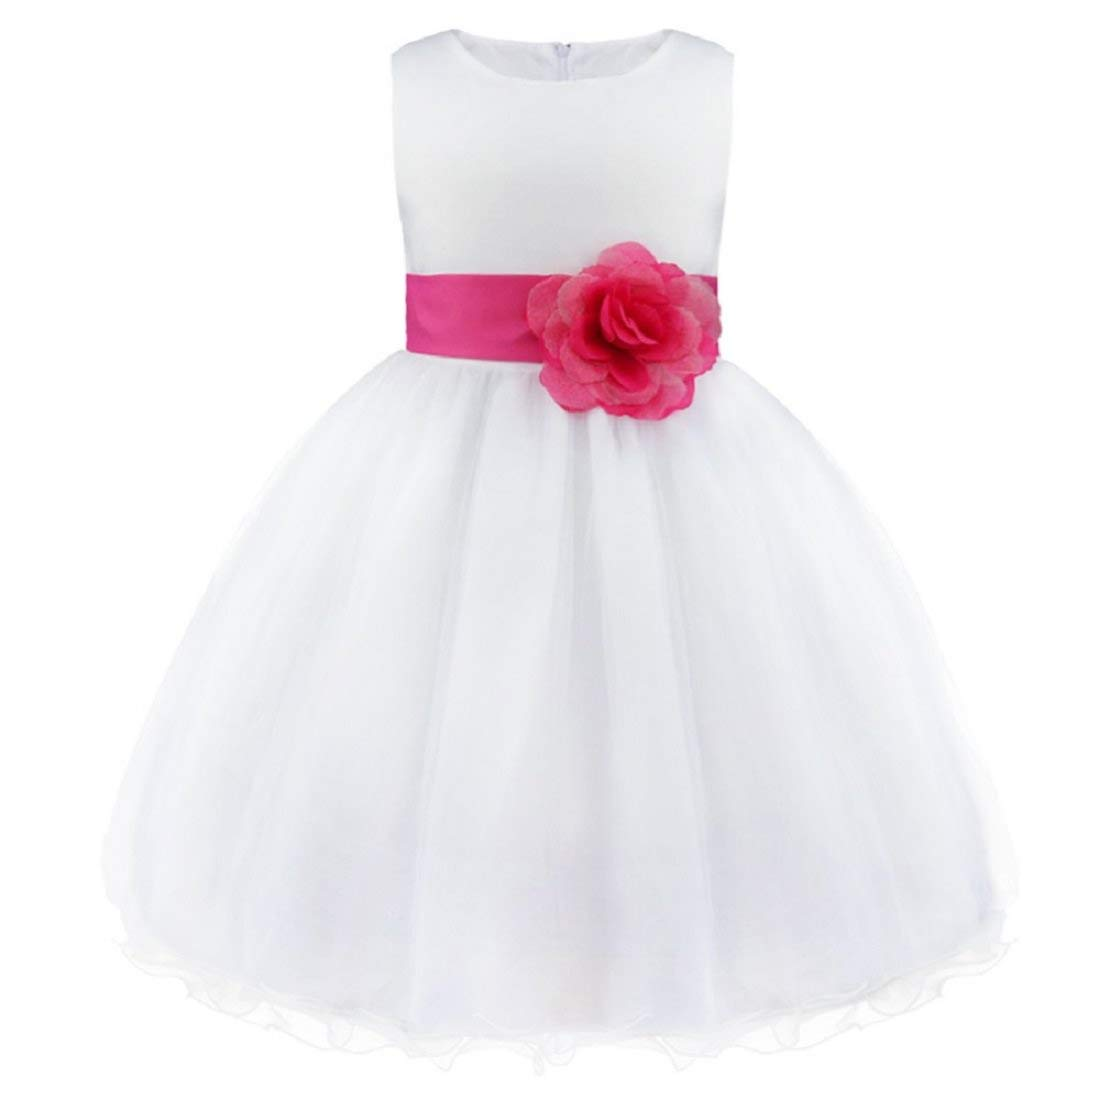 00cf48ad6142 SOFYANA Baby - Girl s Satin Princess Gown Birthday Party Wear Long ...